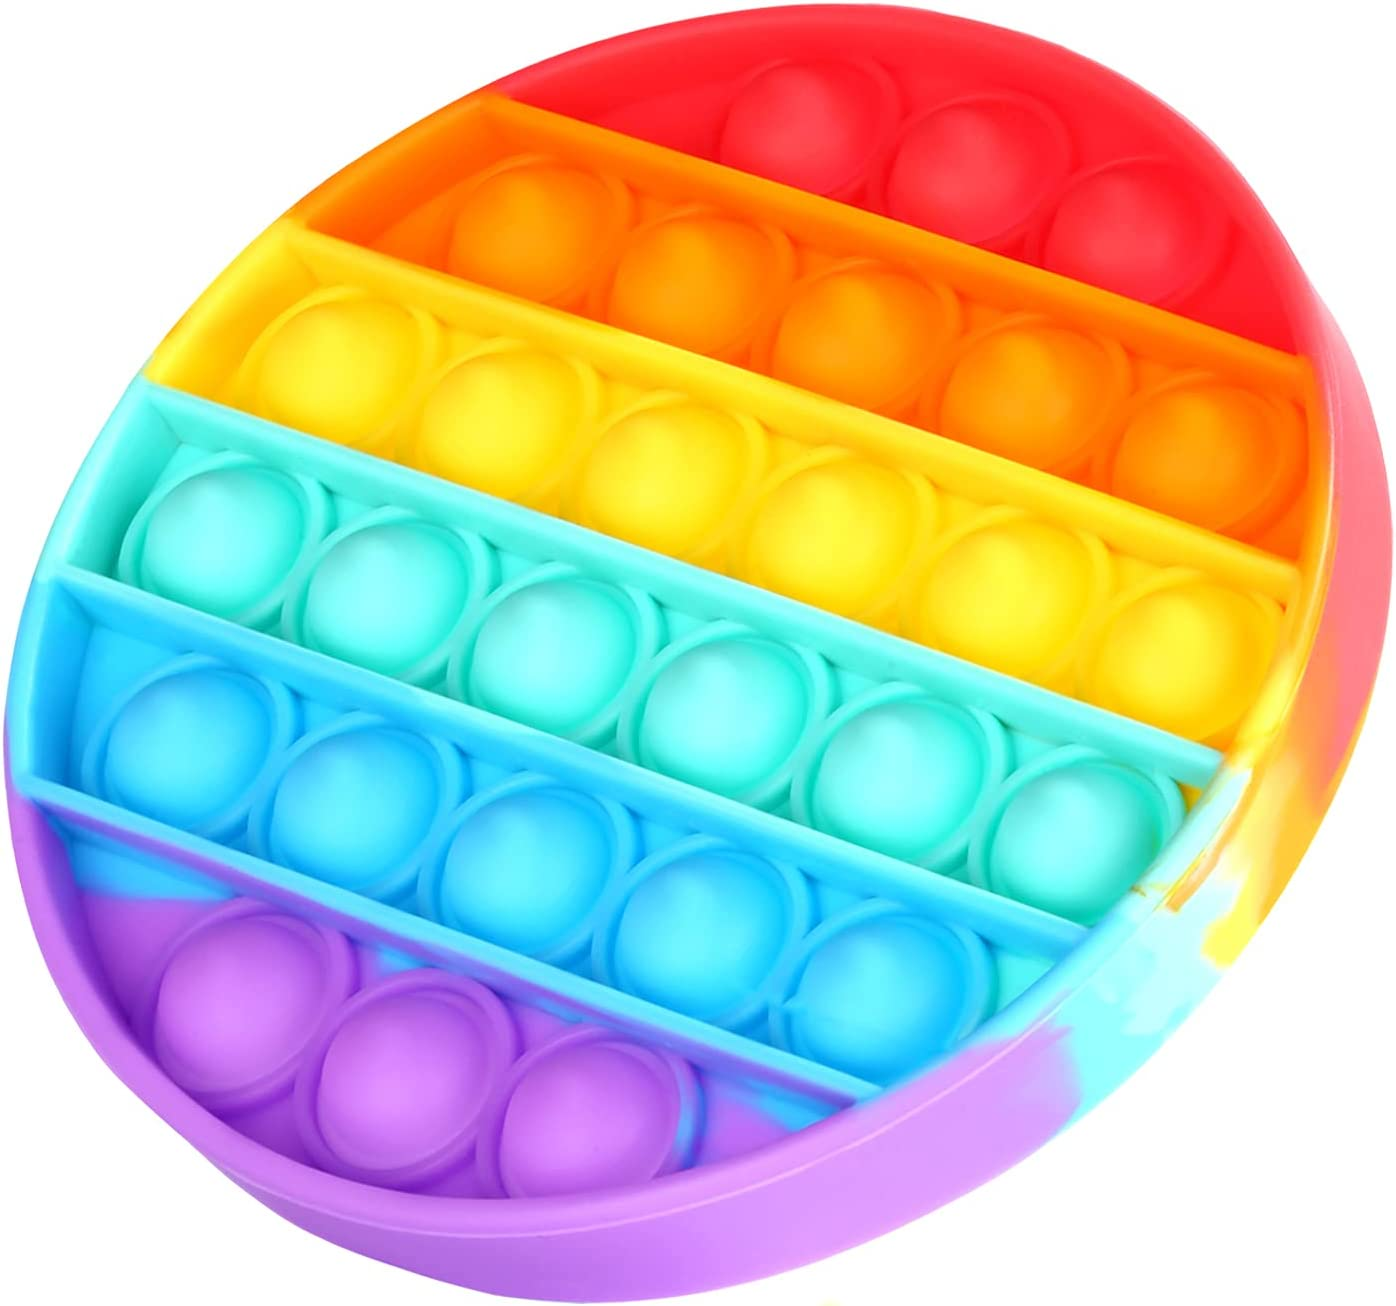 Hilla Push Pop Fidget Toy, Bubble Popping Sensory Toy, Stress Relief Fidgets for Kids Toddlers, Silicone Materials, Rainbow Circular